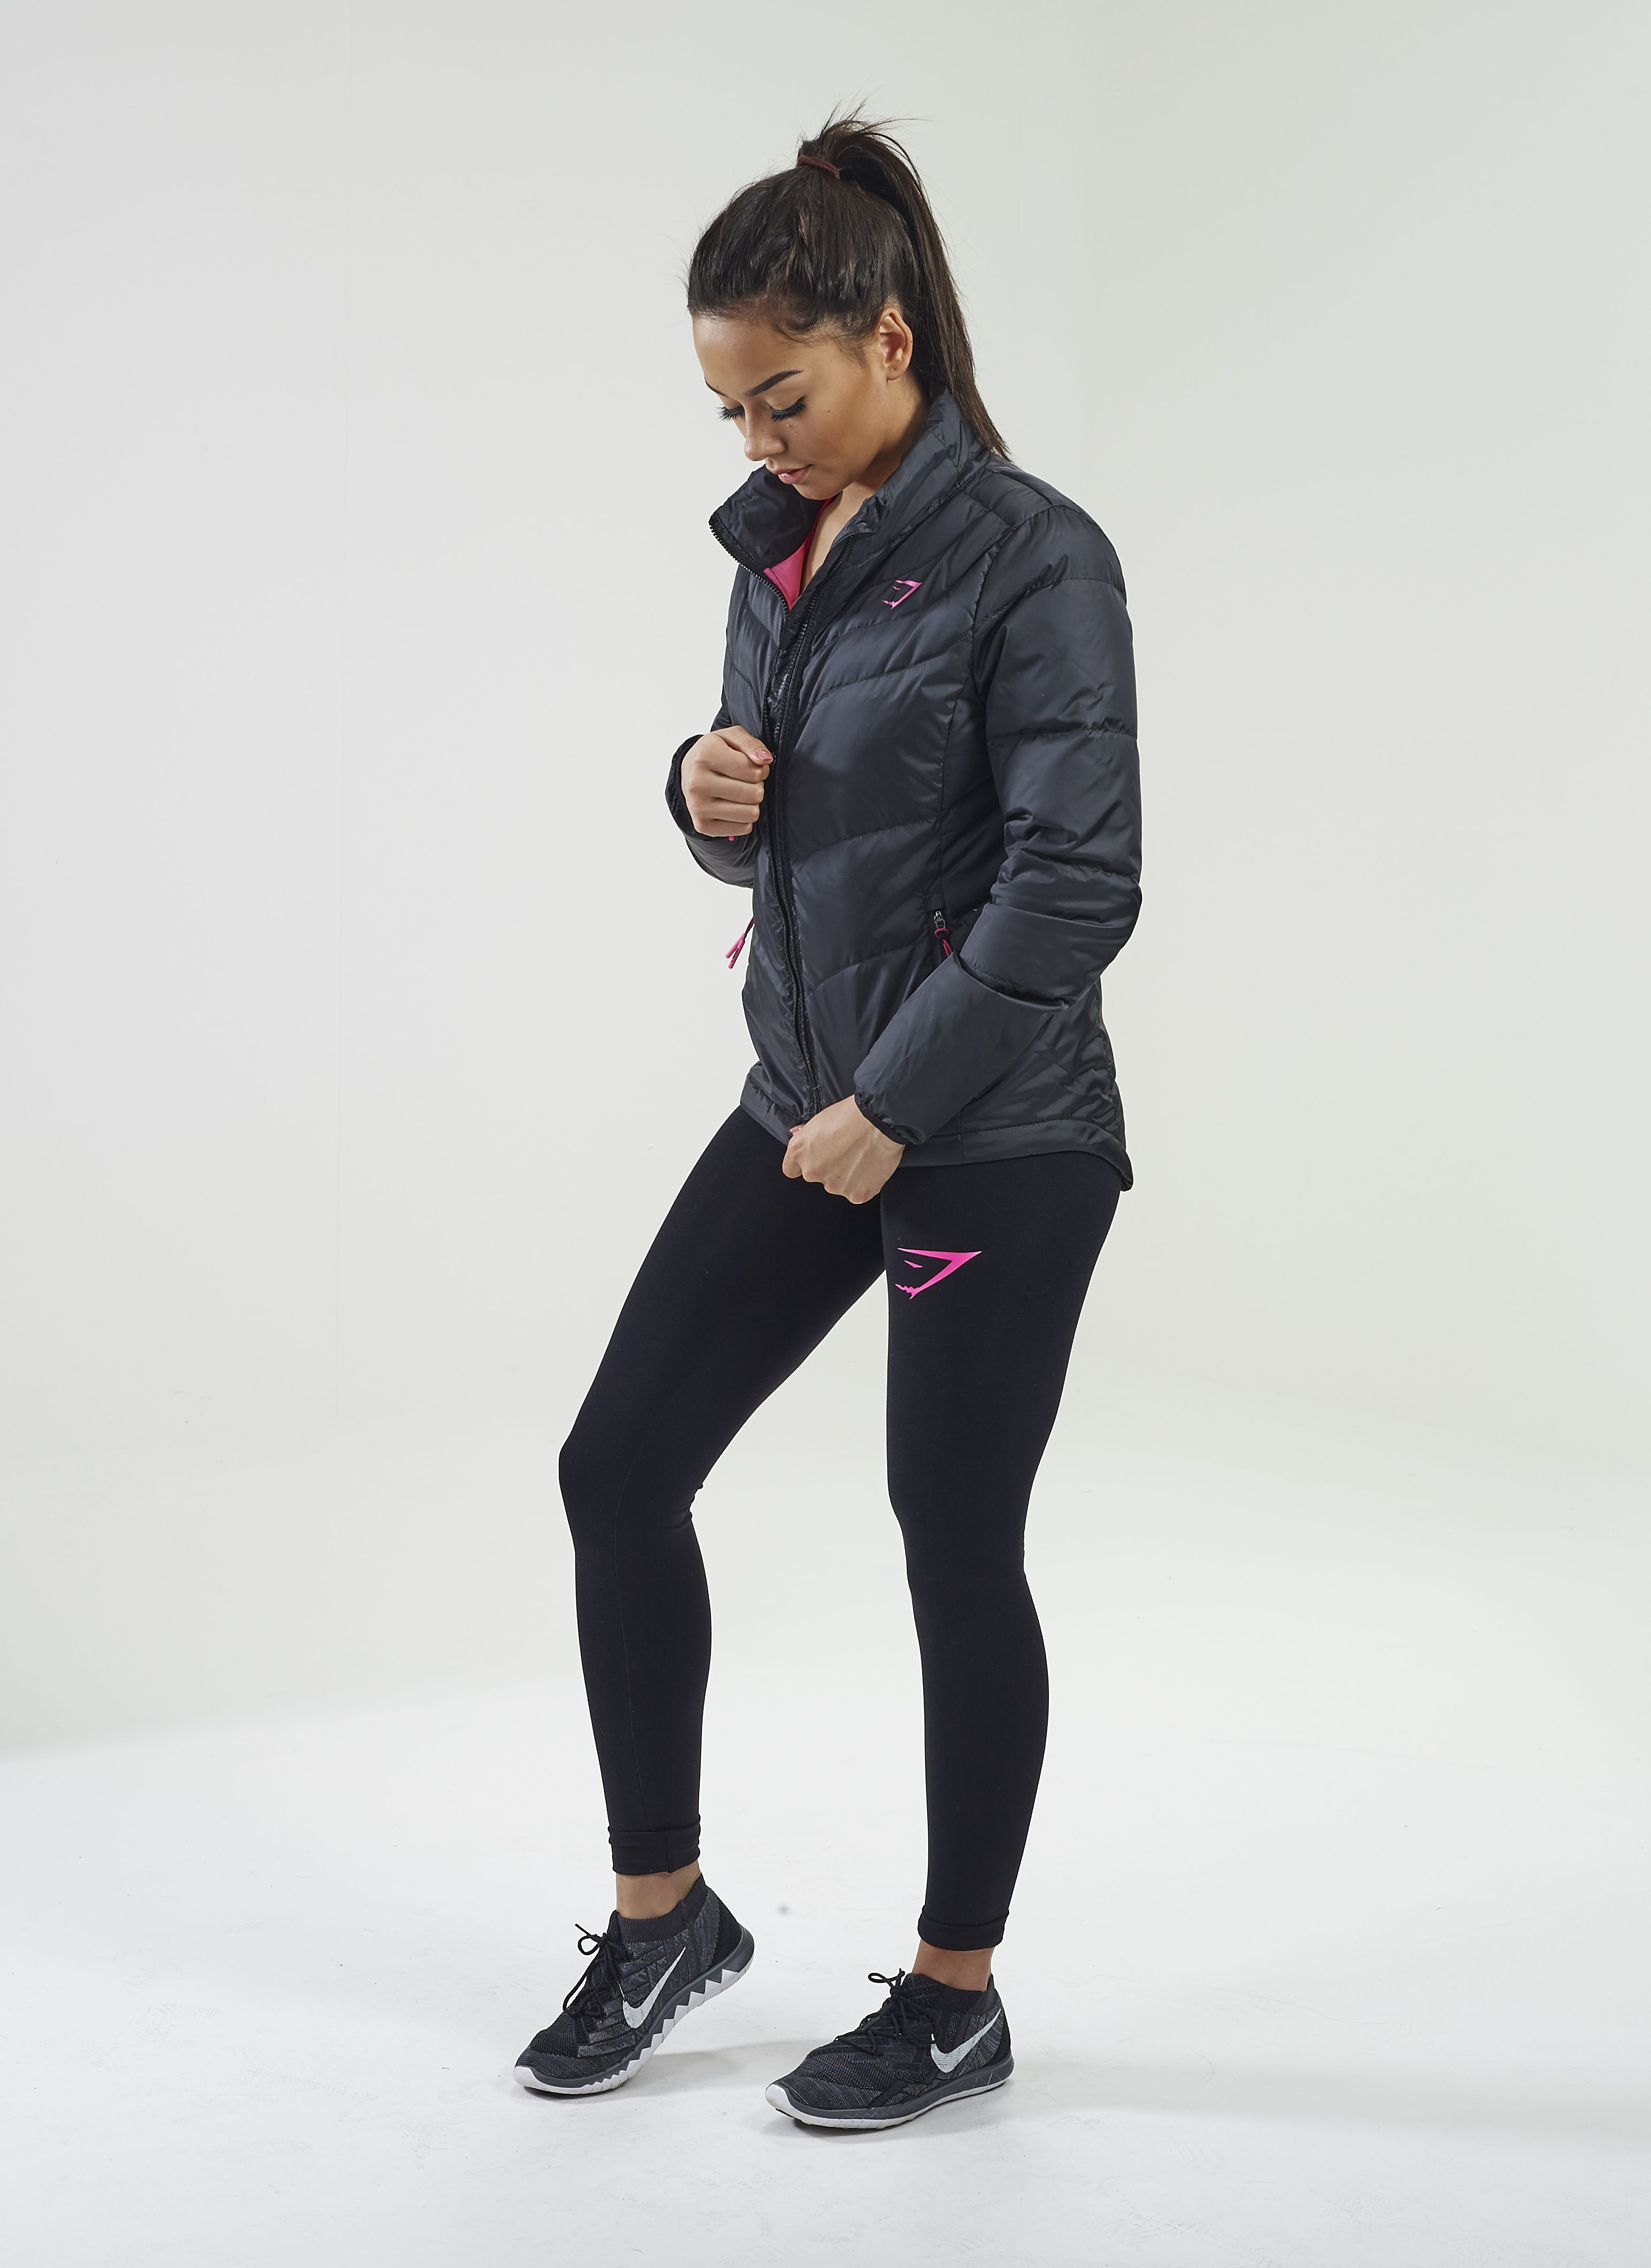 Gymshark Fitted Sector Puffer Jacket Black Order Yours Https Www Gymshark Com Collections Hoodies Jacke Puffer Jacket Black Workout Hoodie Fitness Fashion [ 4834 x 3518 Pixel ]